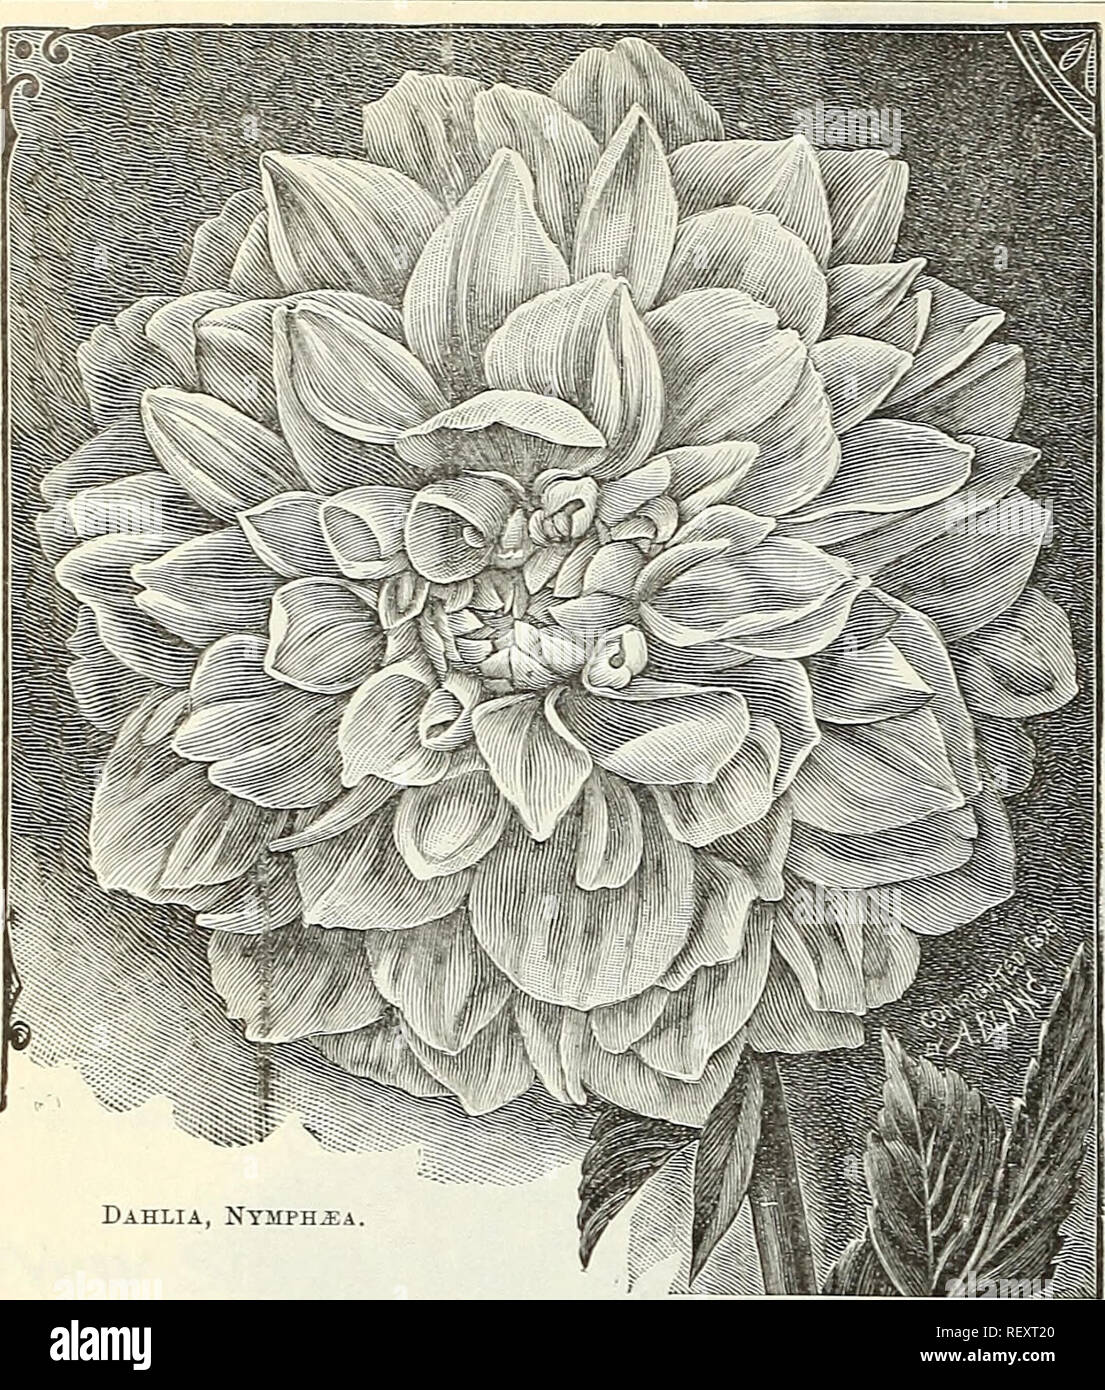 . Dreer's quarterly wholesale price list of tools, fertilizers, insecticides, sundries, etc. Bulbs (Plants) Catalogs; Flowers Seeds Catalogs; Vegetables Seeds Catalogs; Nurseries (Horticulture) Catalogs. 12 DREER'S WHOLESALE PRICE LIST.. Dahlia, Nysiph^a Eighteen Grand Cactns Dahlias. Celestine. Yellow, suffused with orange, giving a rich golden yellow effect. Countess of Pembroke. Pure delicate rosy lavender, flowers of medium size, of perfect form and extremely profuse bloomer. Empress of India. Deep rich maroon, a fine flower. Gilt Edge. Entirely distinct from all others, each petal having  - Stock Image